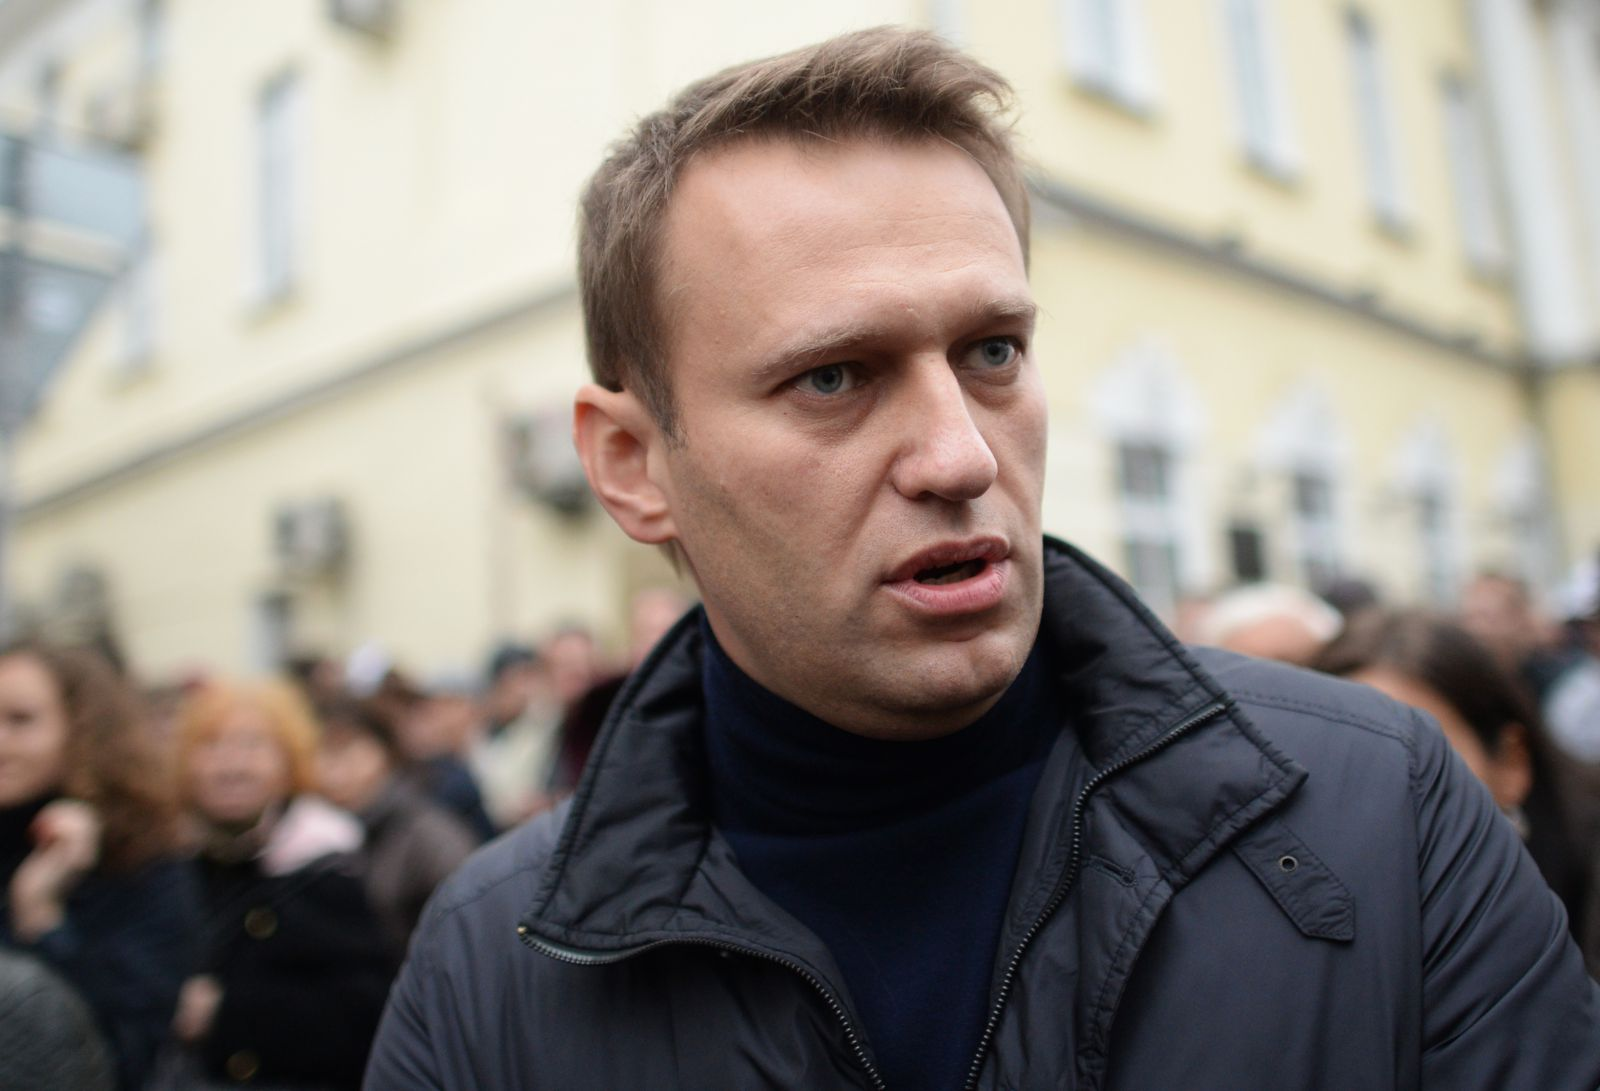 Russia's Navalny to return home after poisoning